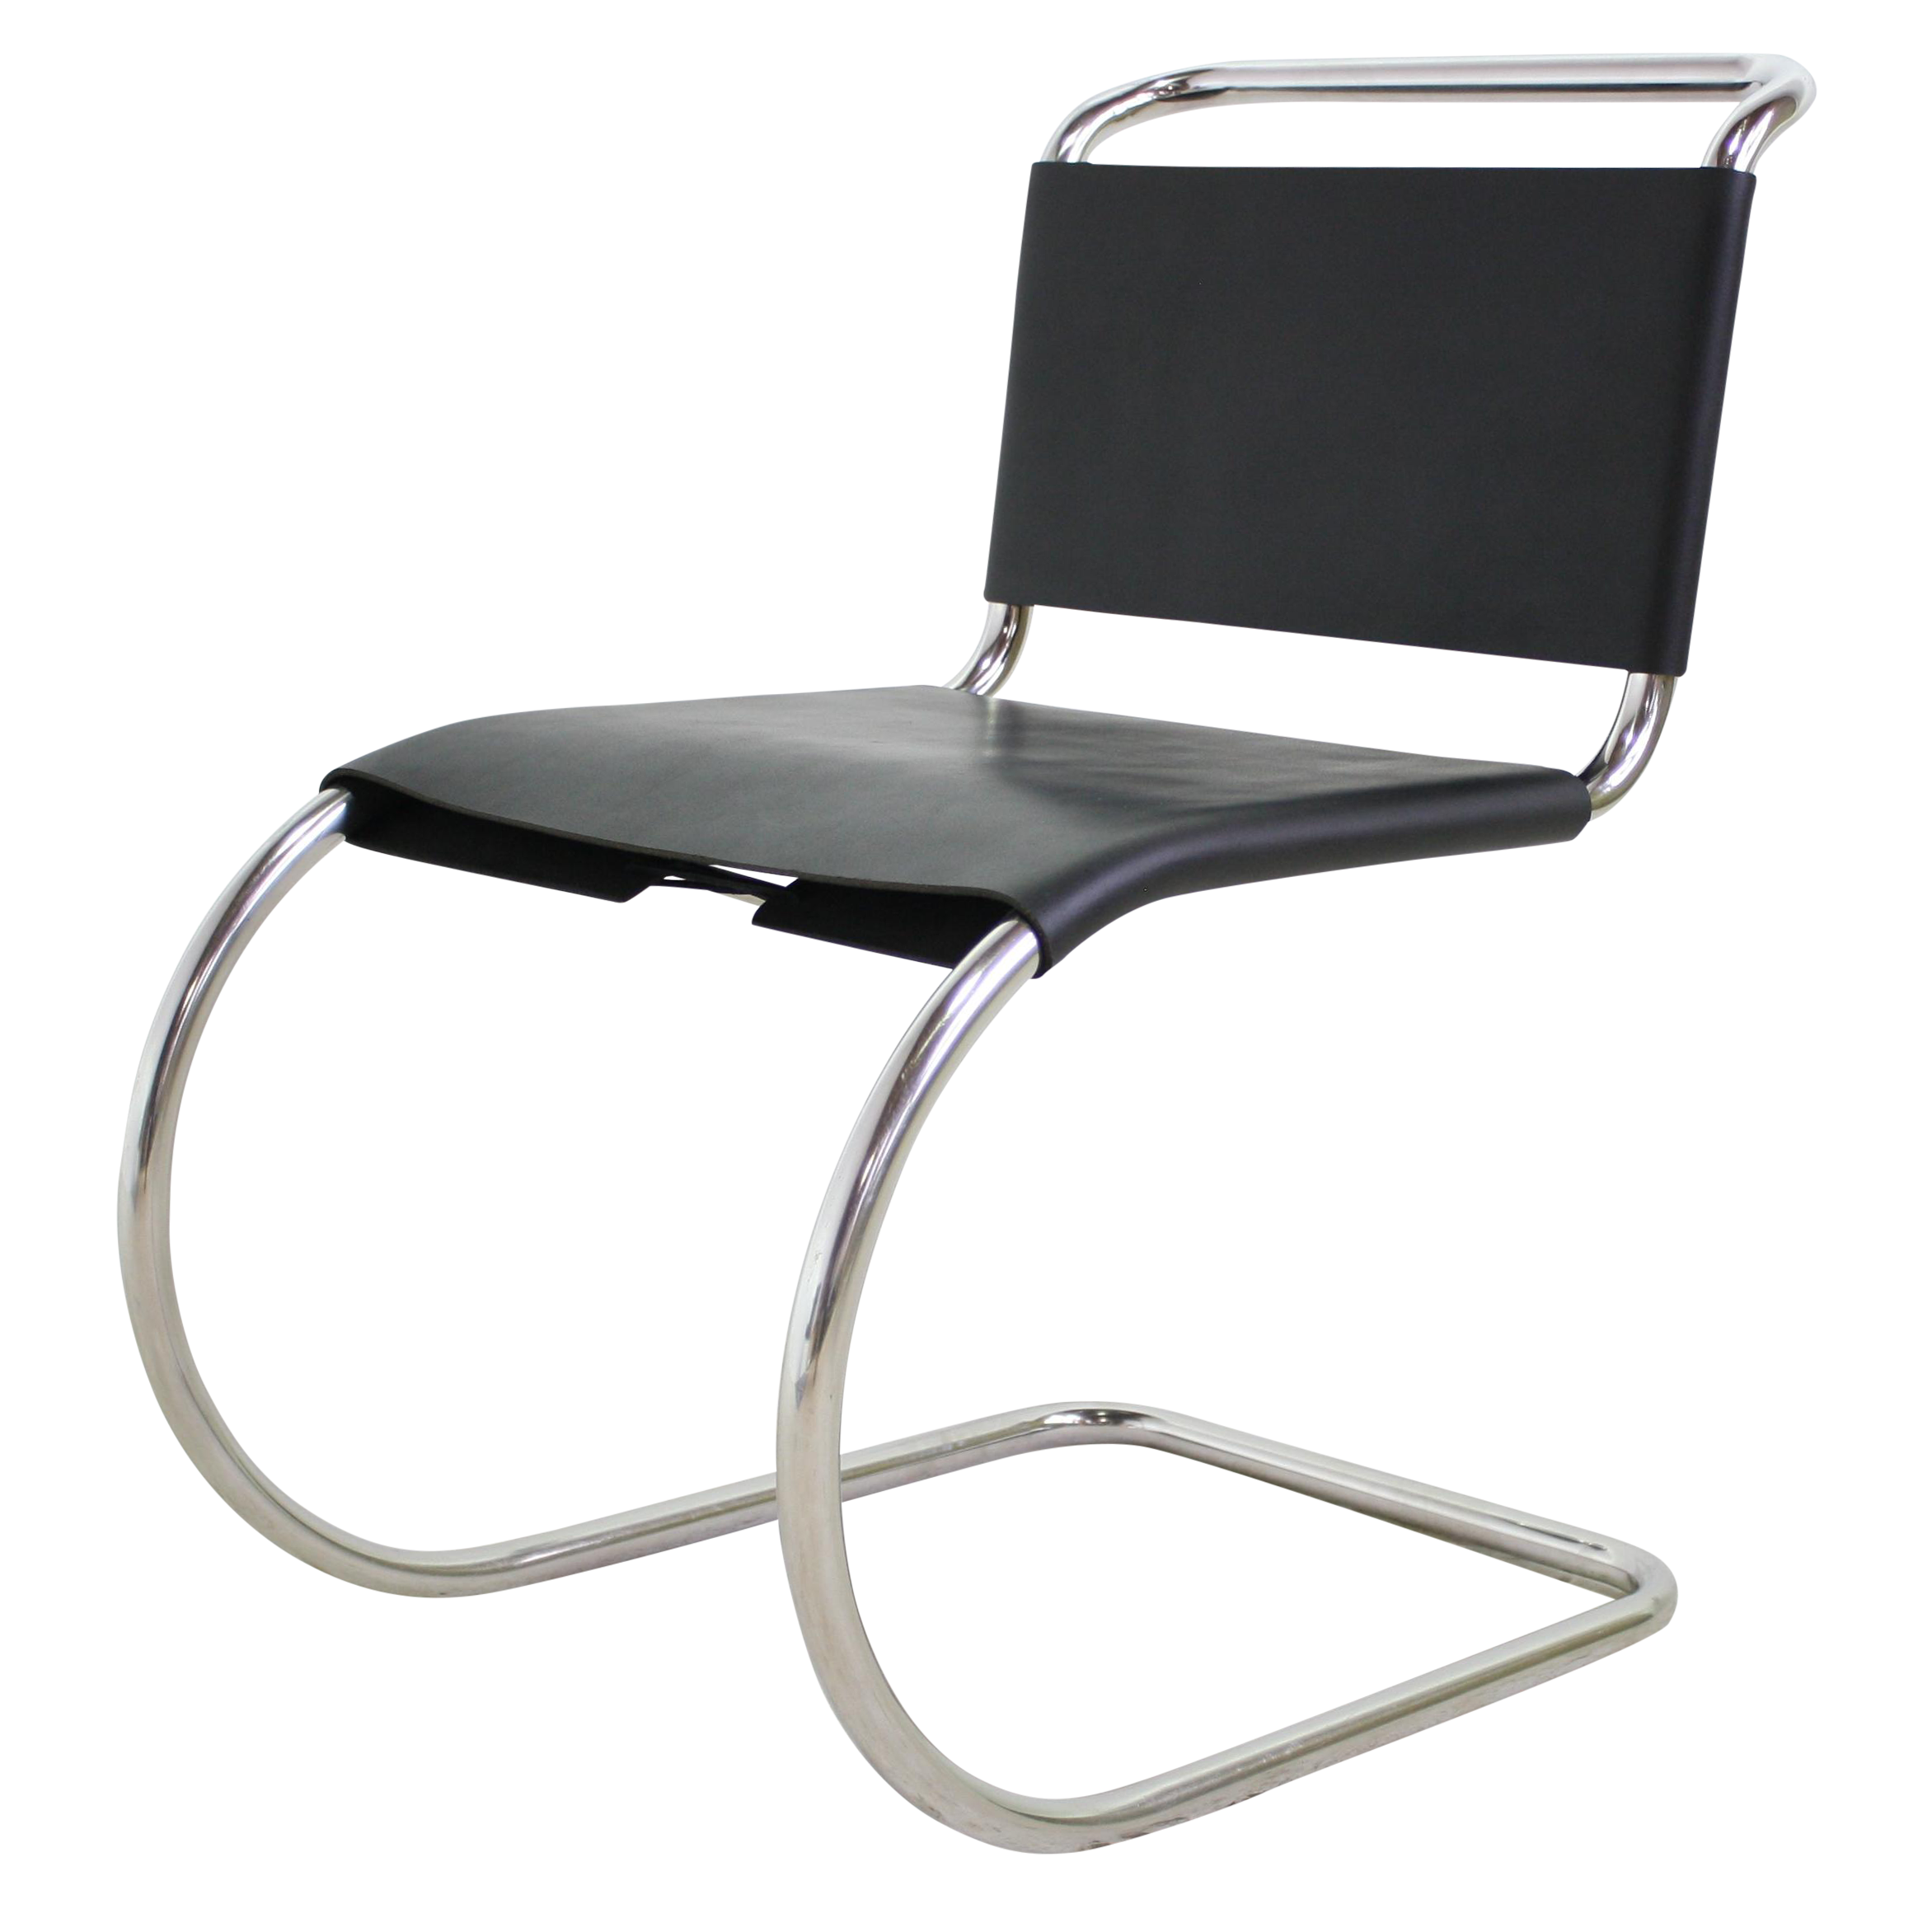 Mies van der rohe chair - Image Of Mies Van Der Rohe Leather Cantilever Chair 5 Avail